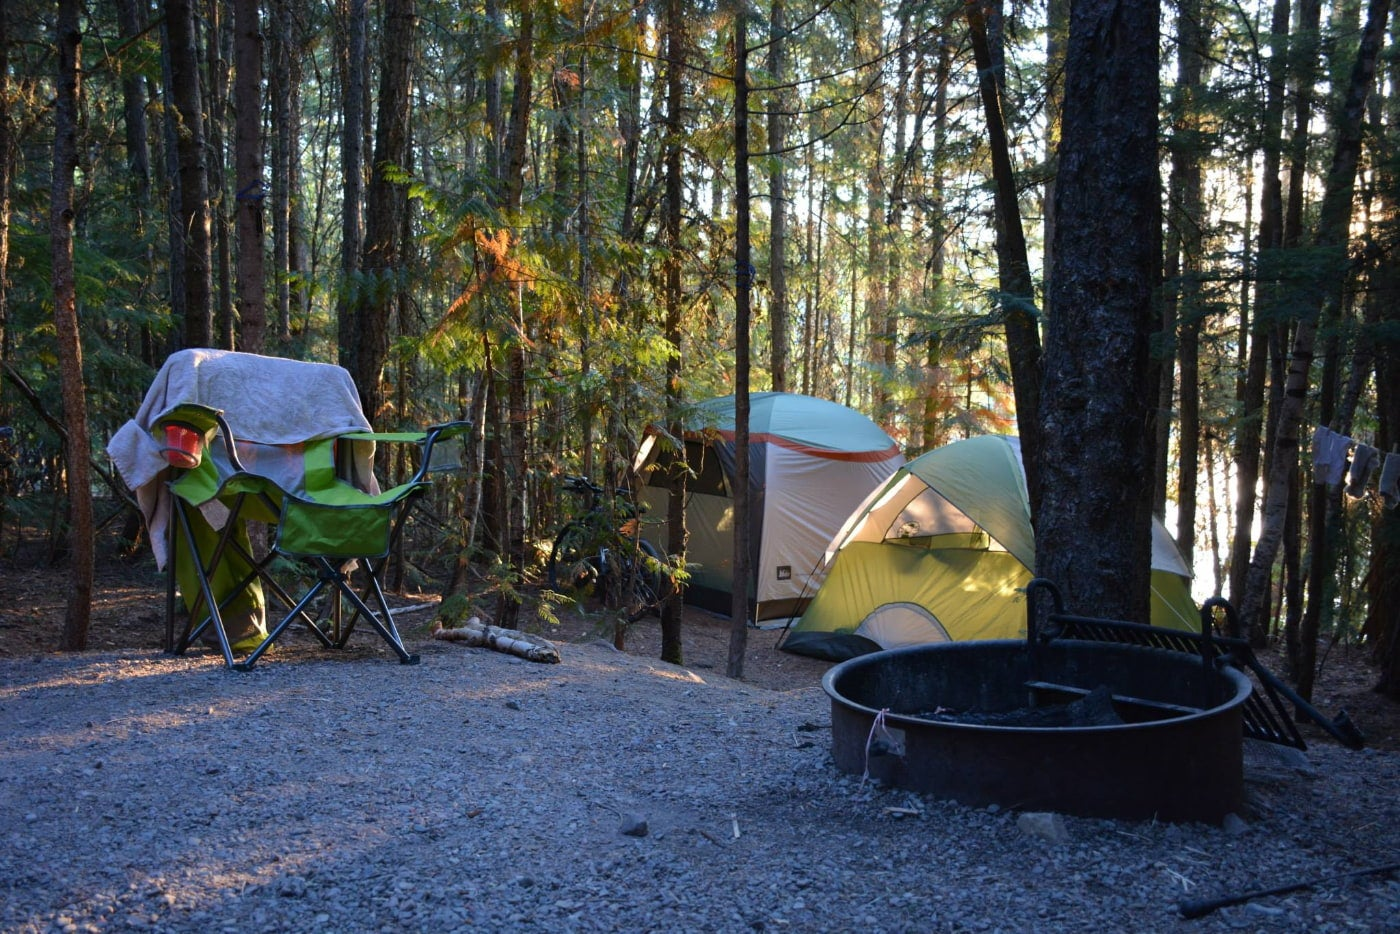 camp chair and fire ring visible in wooded campsite featuring two tends in the background